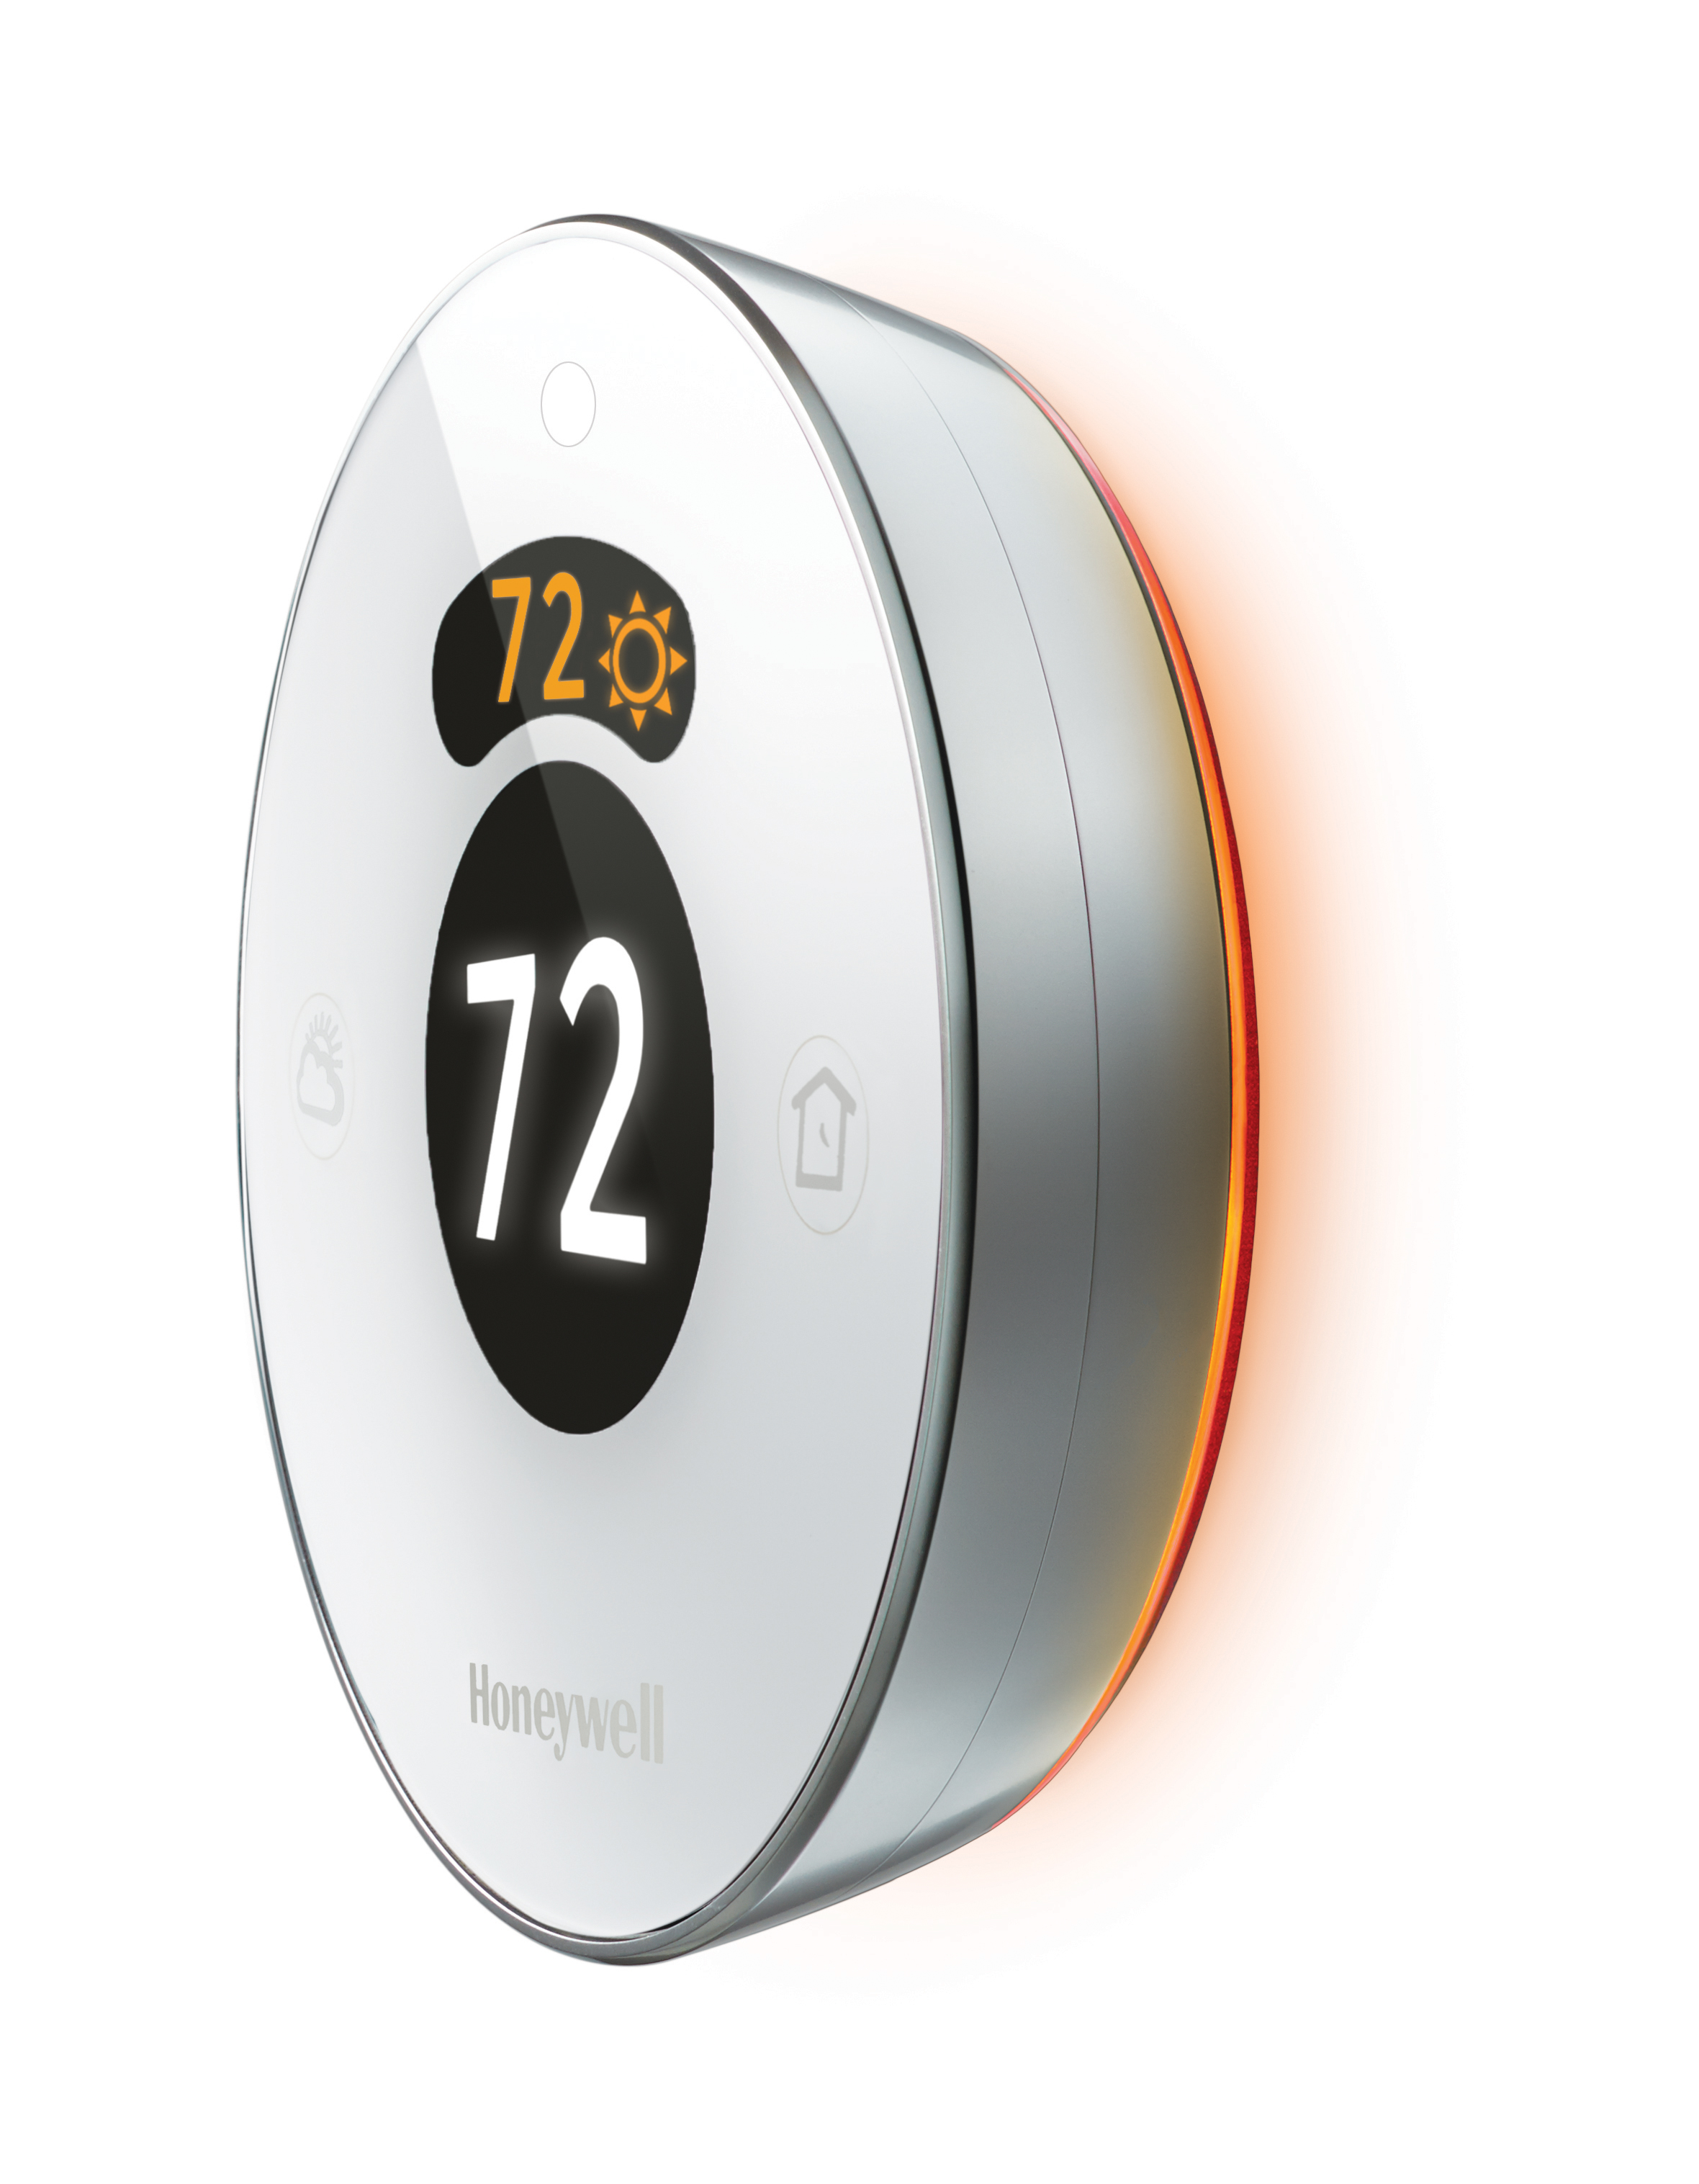 official release honeywell lyric 11 30 2015 smartthings community